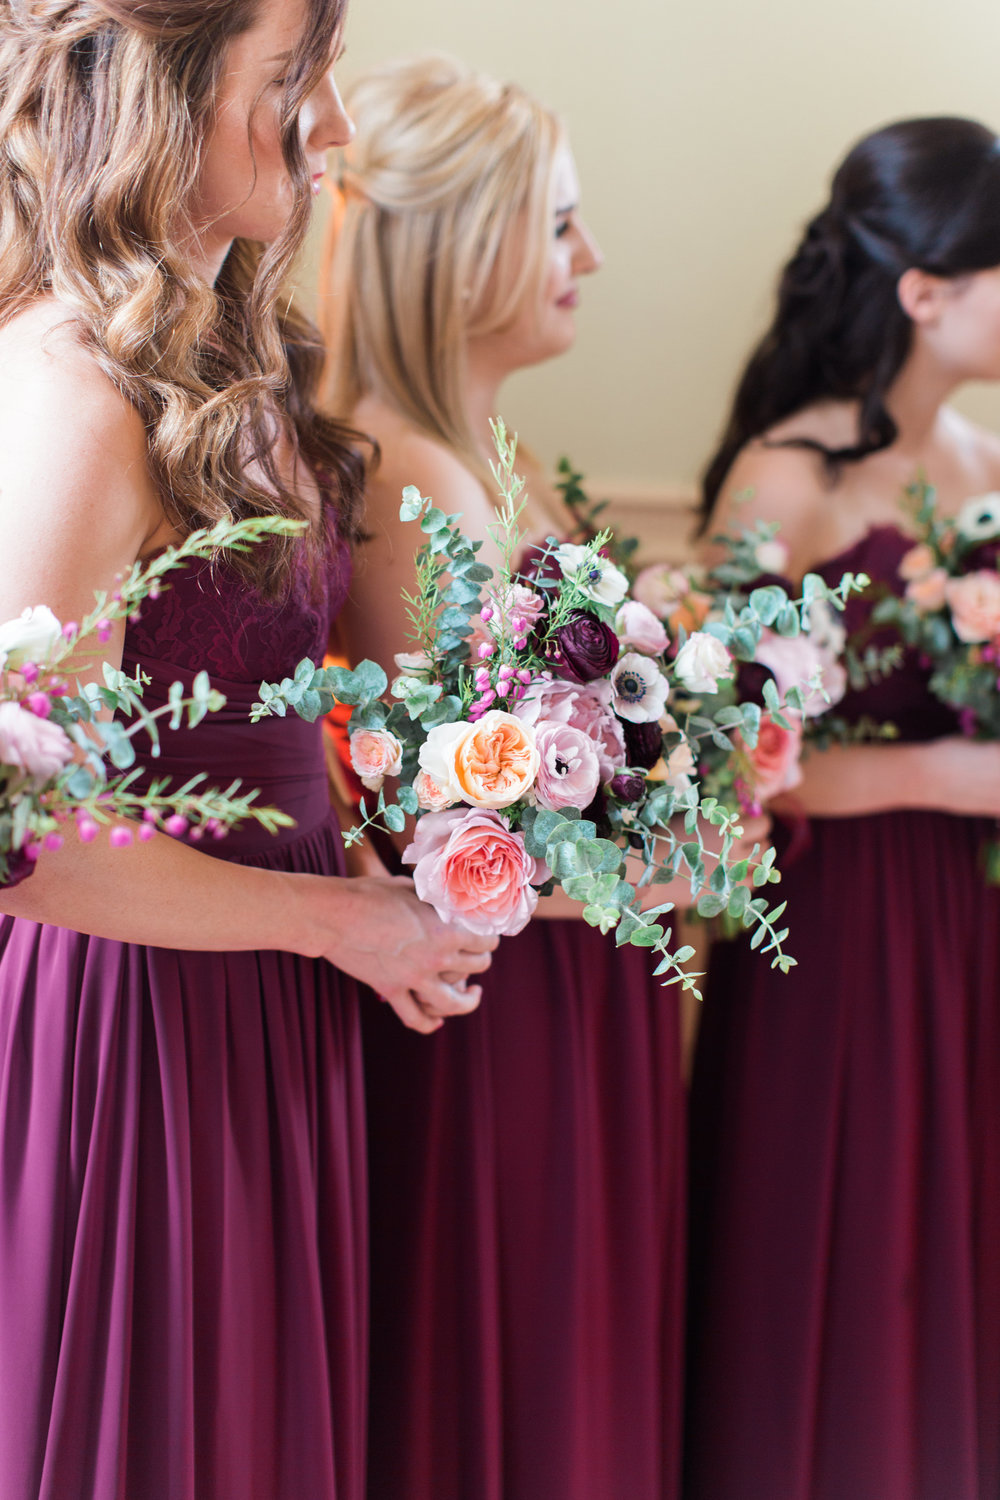 spring-inspired-wedding-at-kohl-mansion-burlingame-california-16.jpg